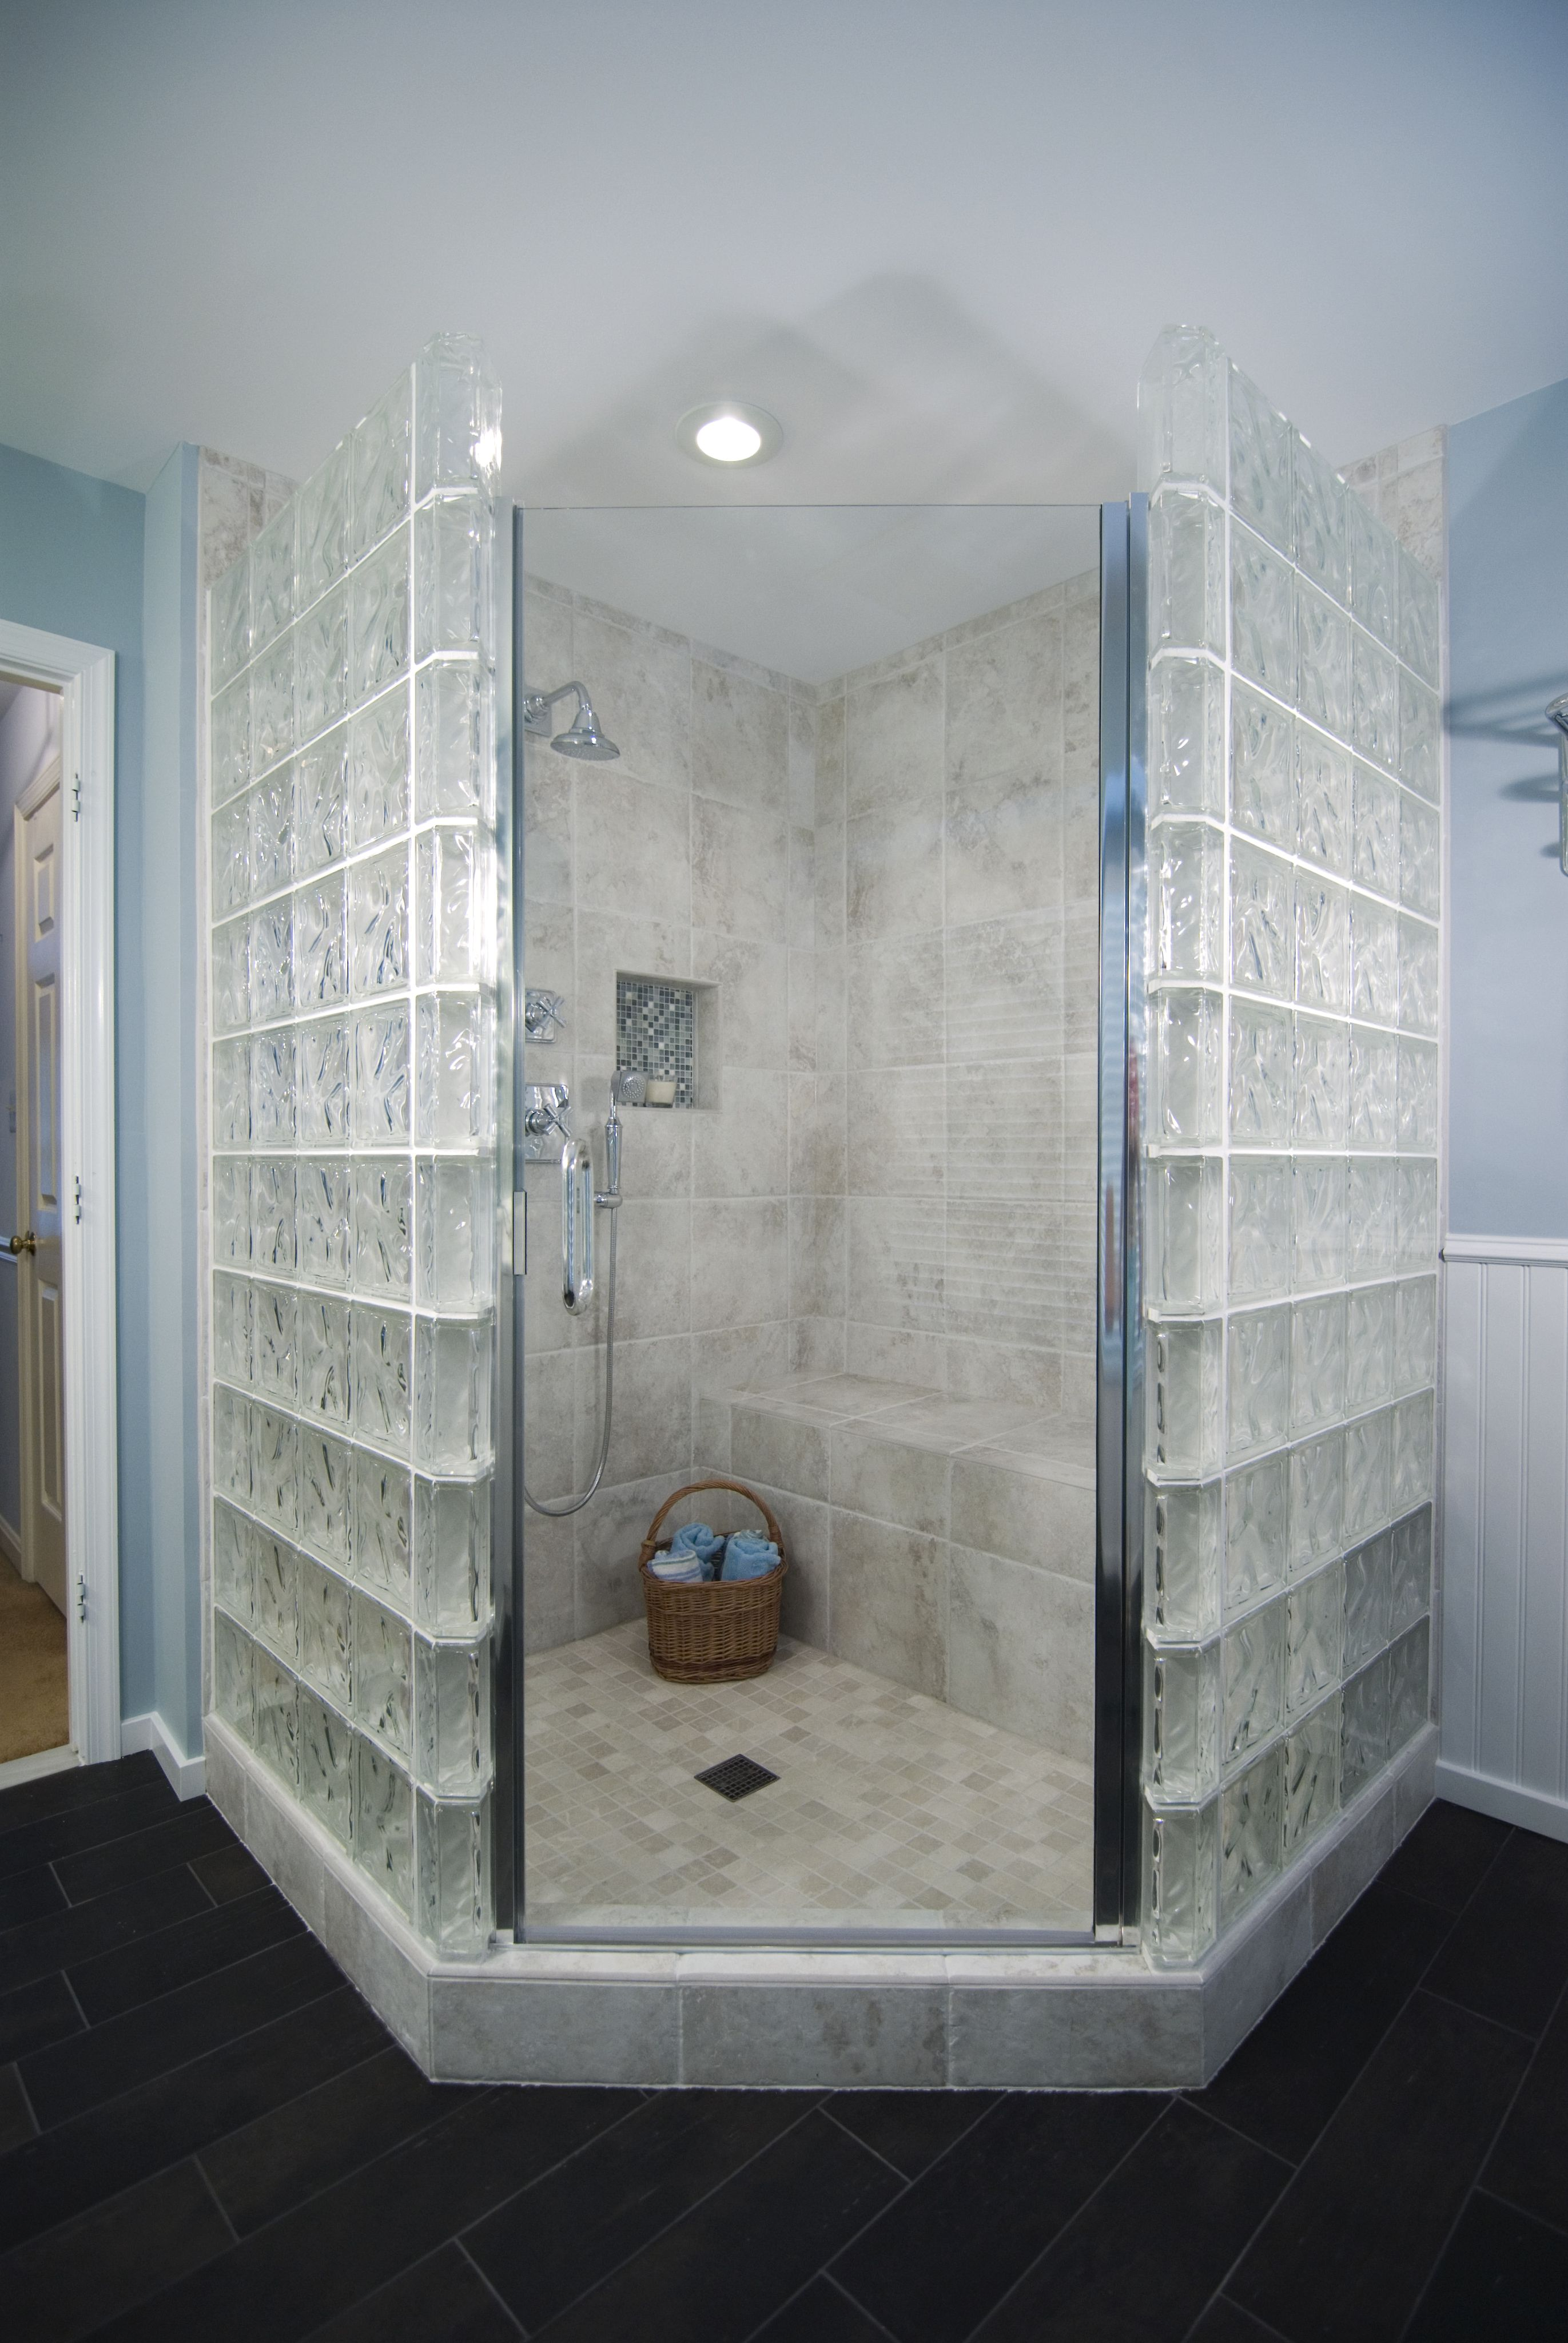 Glass Blocks Surround This Shower In Semi Privacy Bathroom Shower Bathrooms Remodel Bathroom Layout Bathroom Design Inspiration